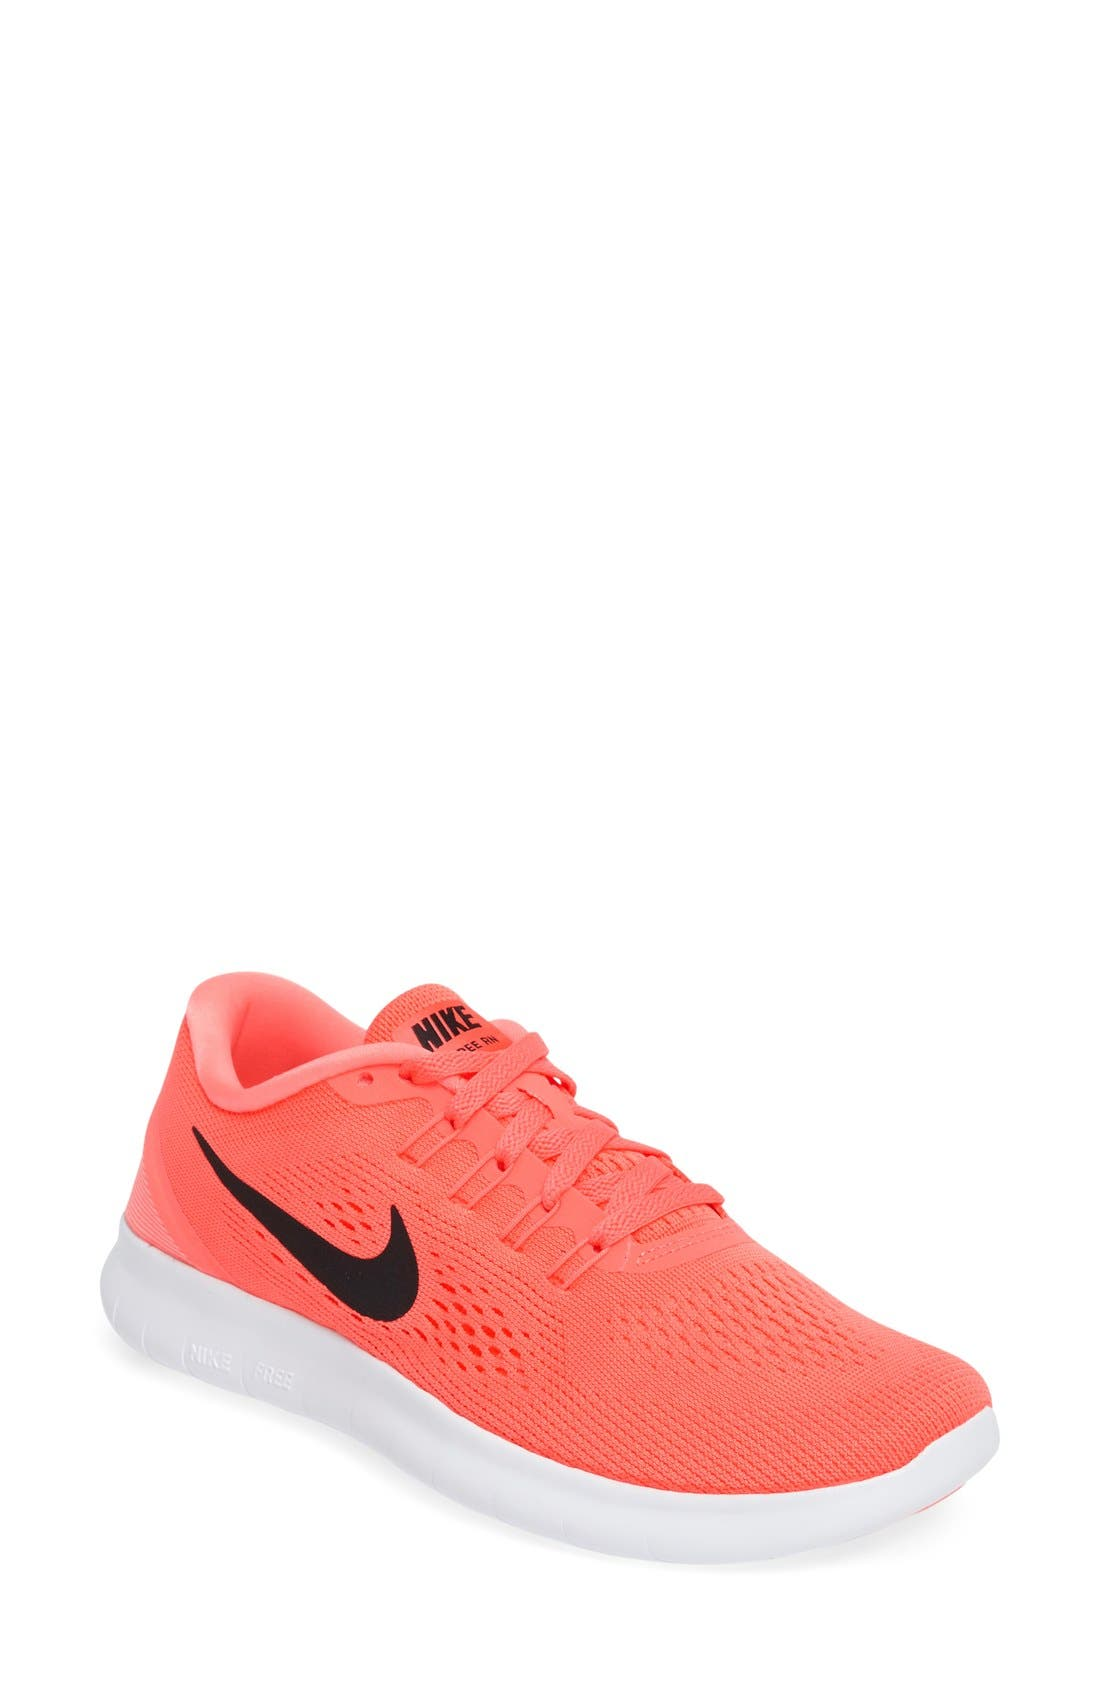 Main Image - Nike Free RN Running Shoe (Women)